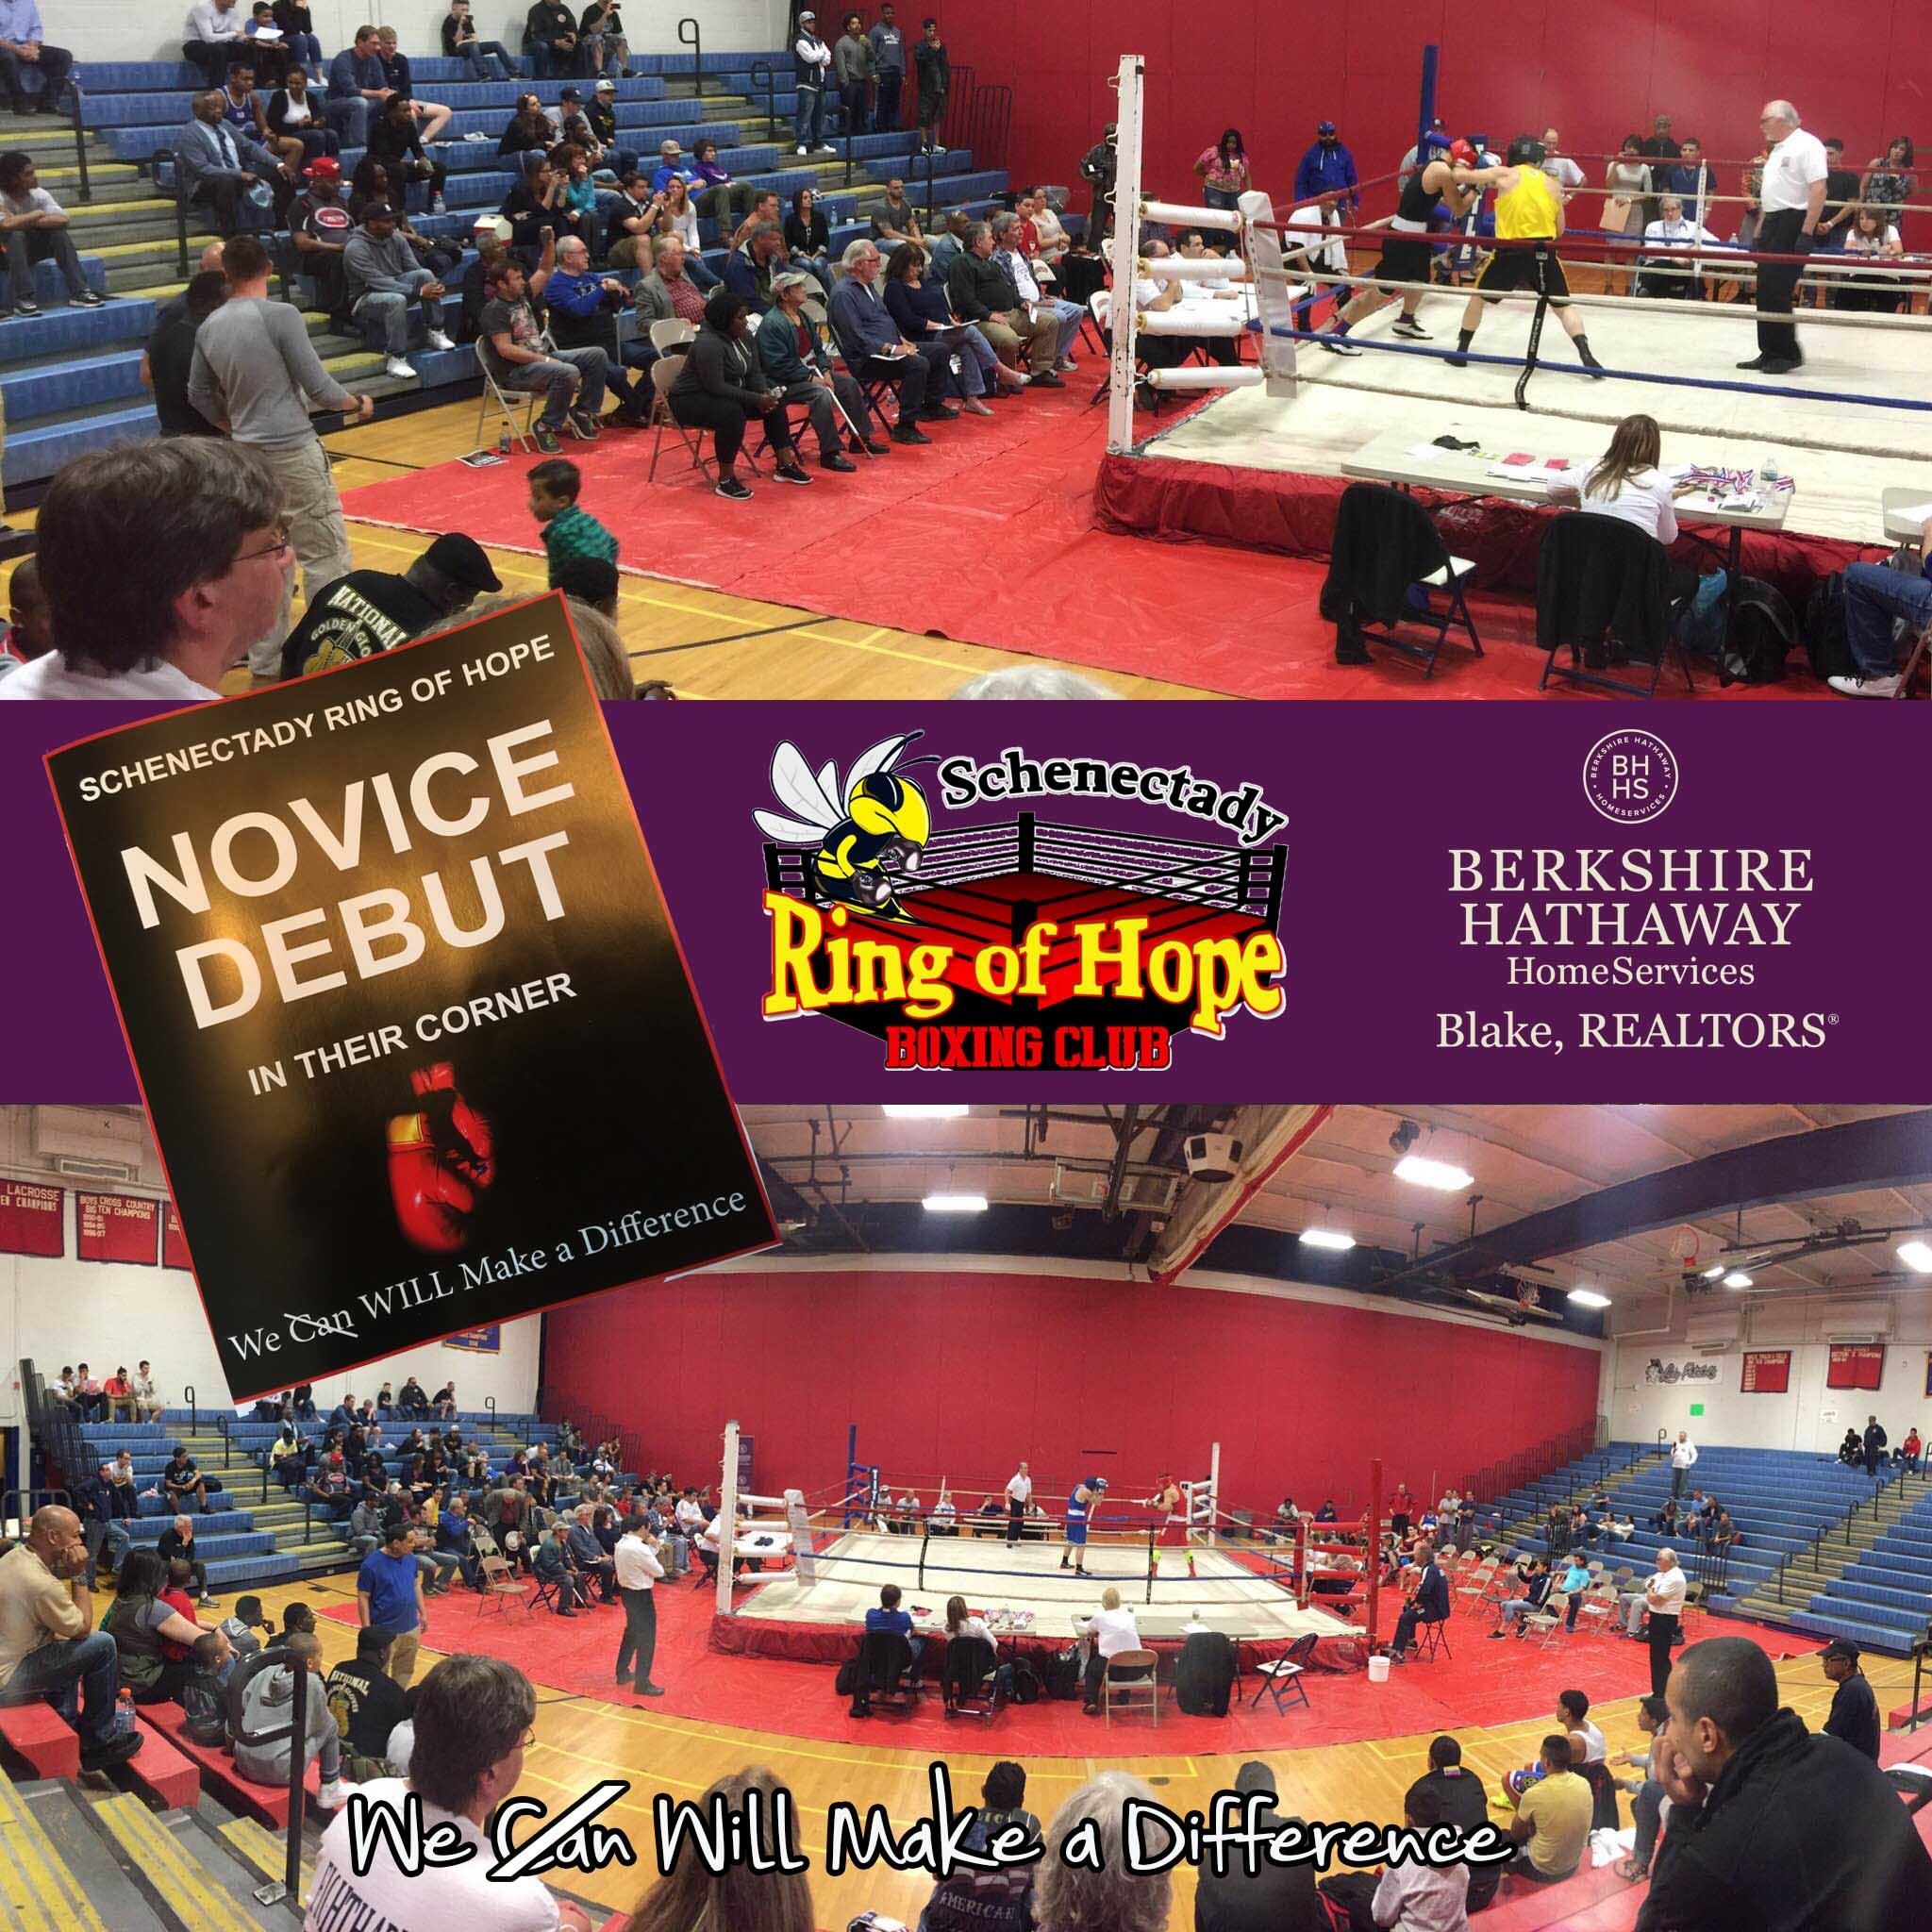 Thank you to everyone who came out to support and enjoy some boxing on a Saturday afternoon.